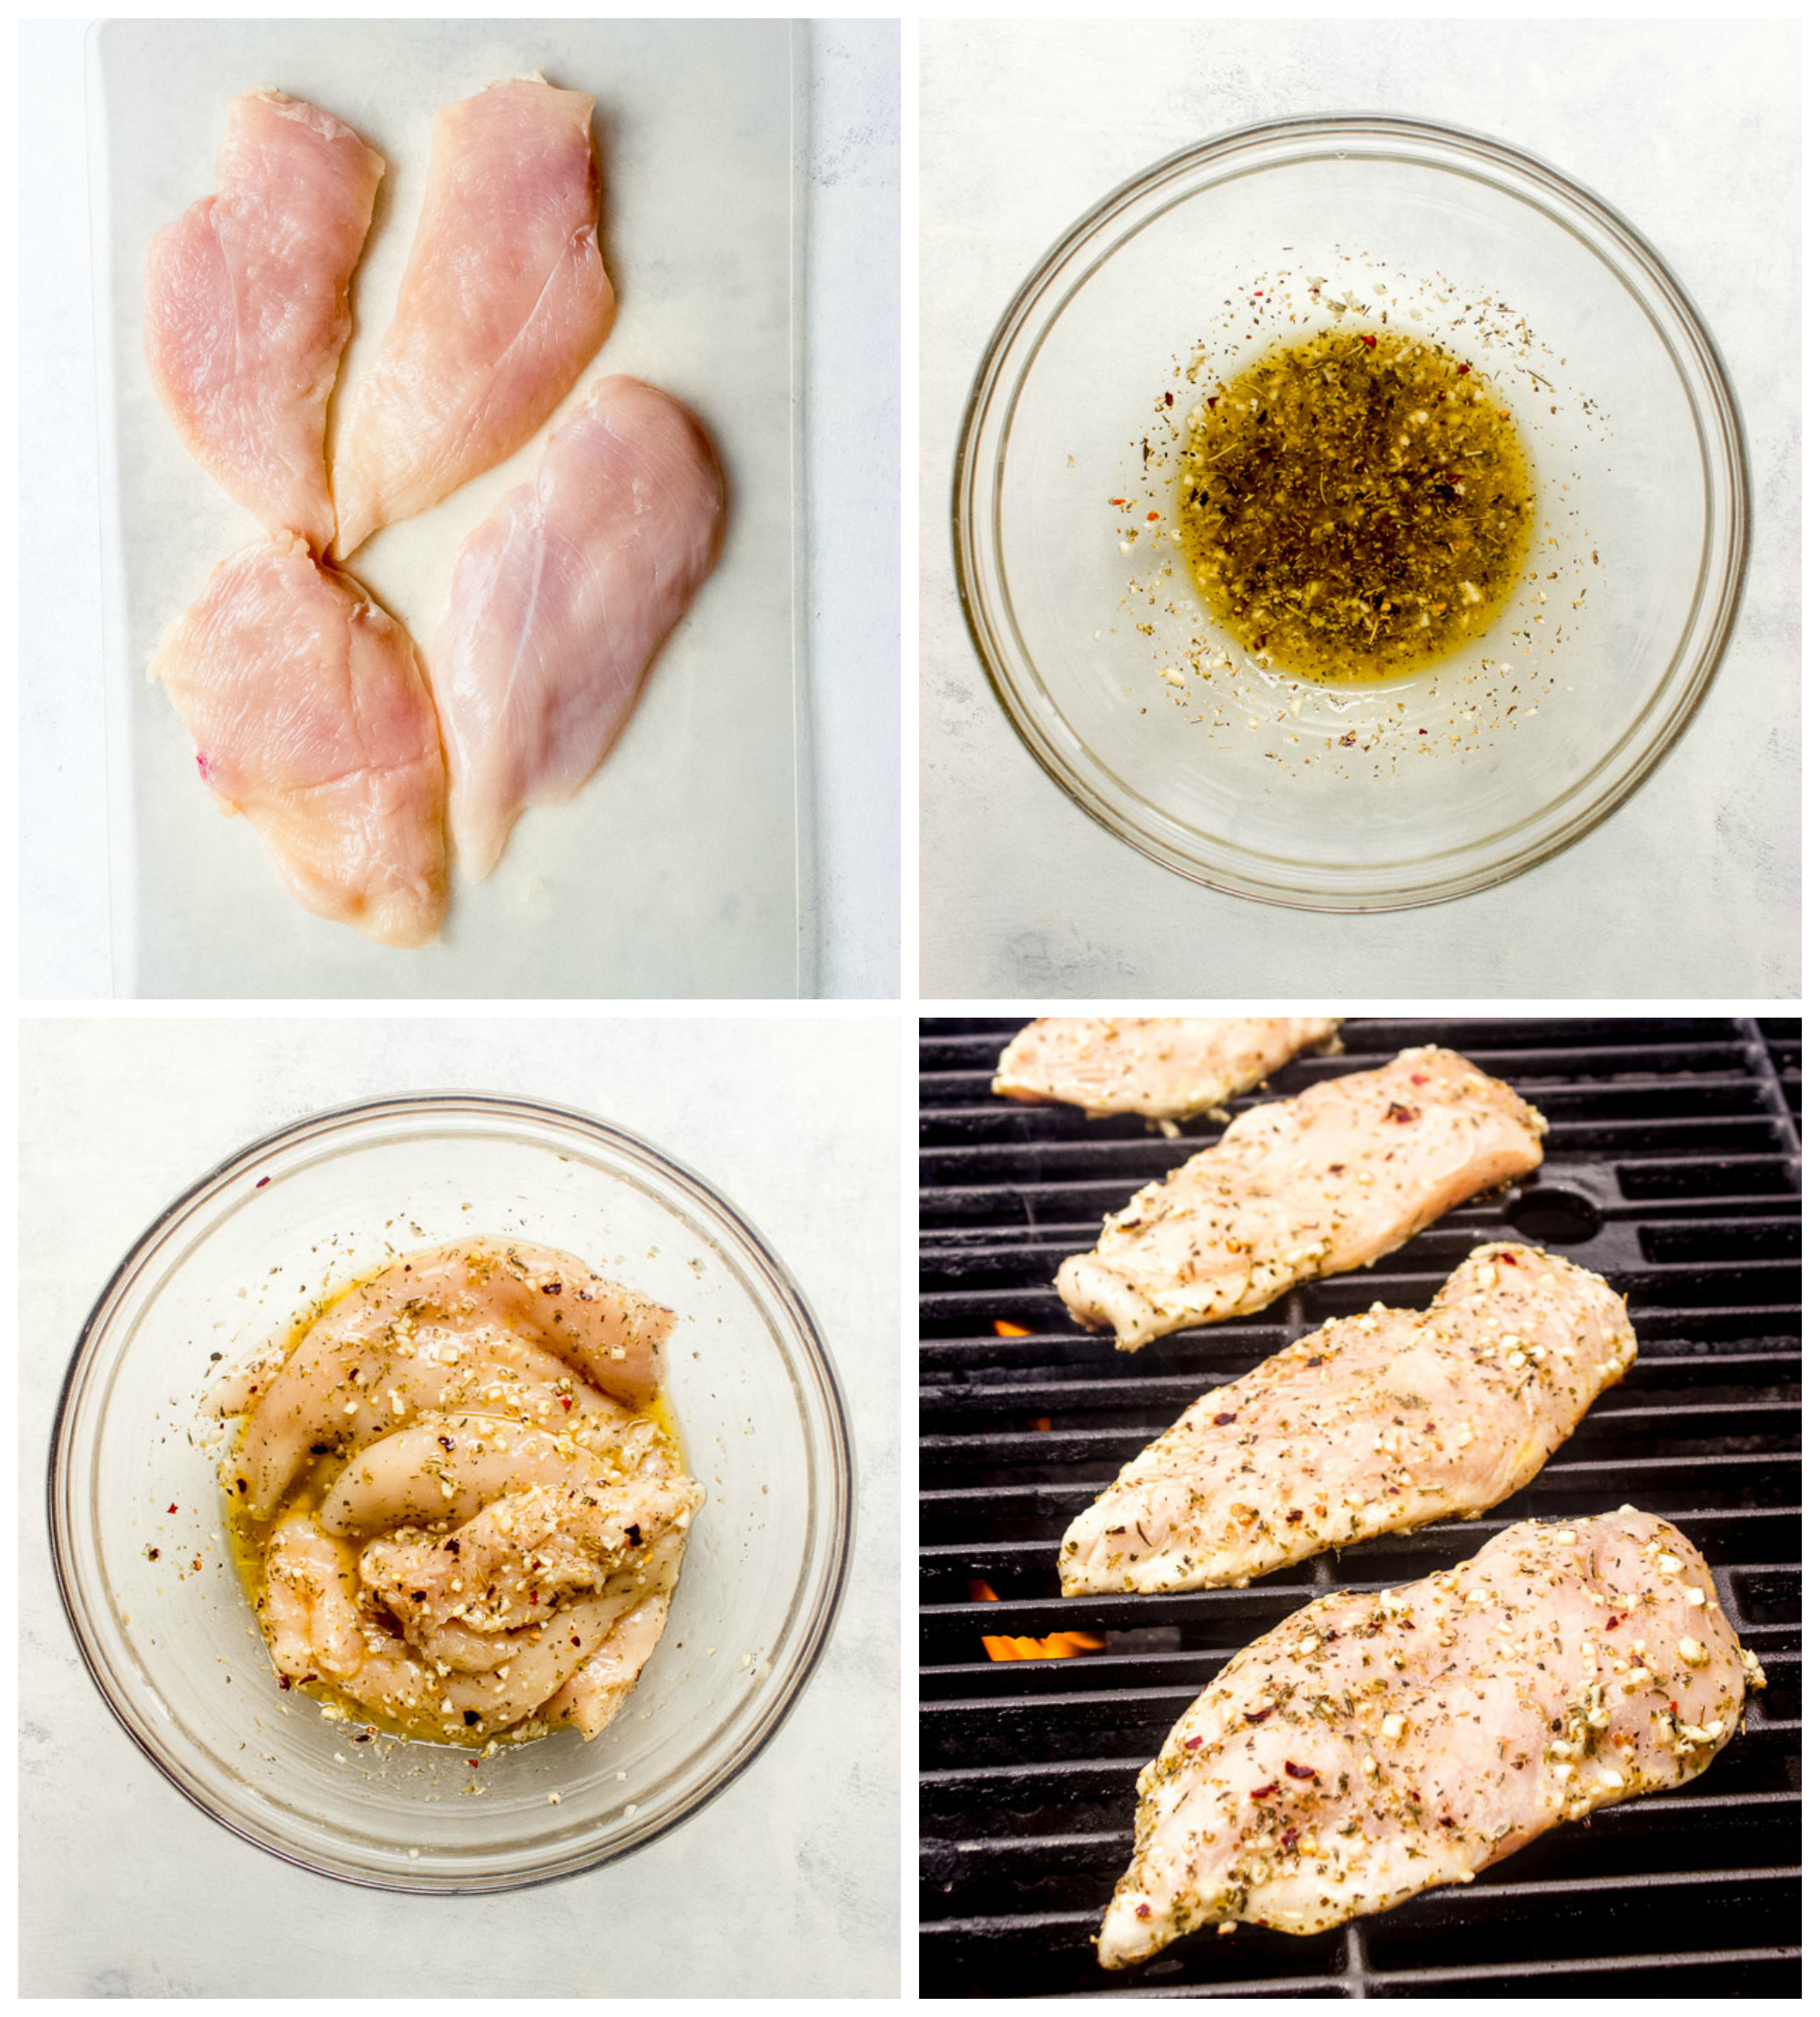 Step by step instructions on how to make grilled chicken with balsamic reduction